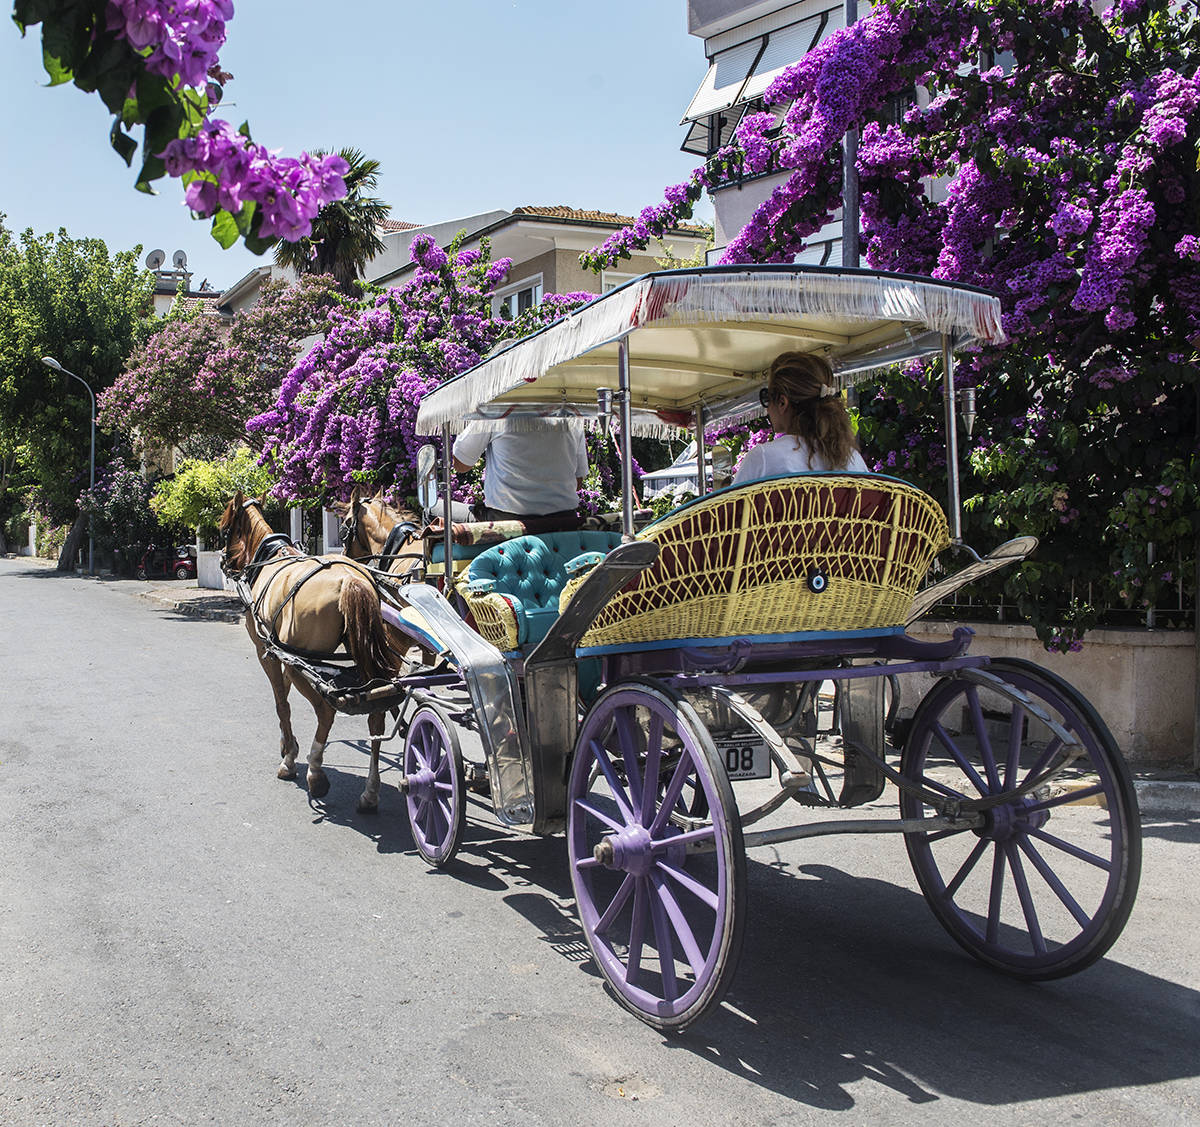 #208 —Burgazada - 